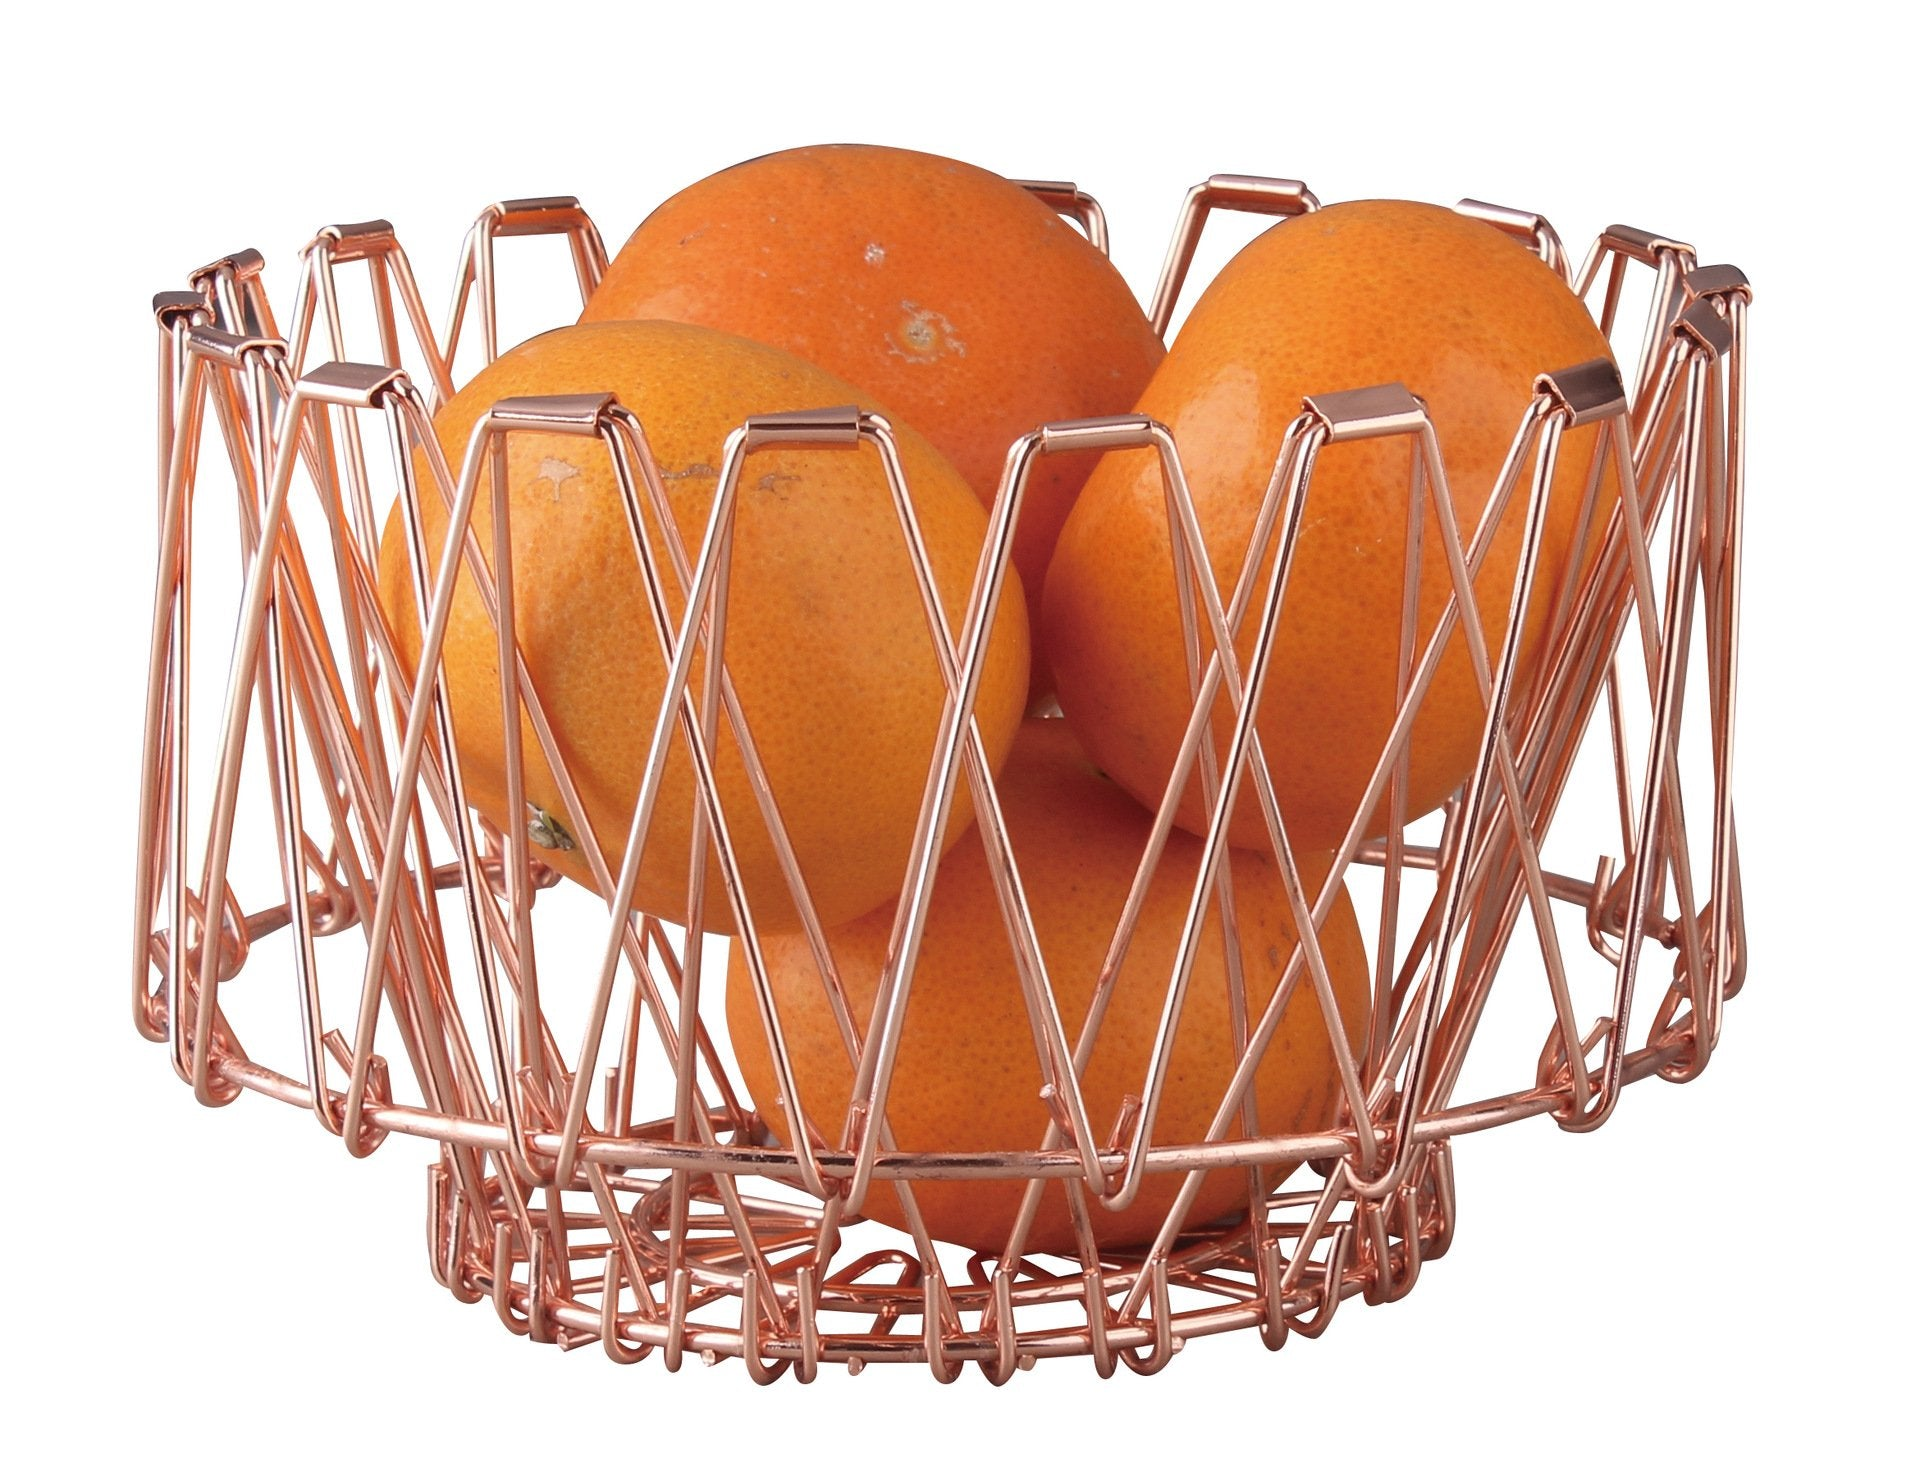 Collapsible Stainless Steel Fruit Basket - Foldable Metal fruit Bowl - Storage Baskets